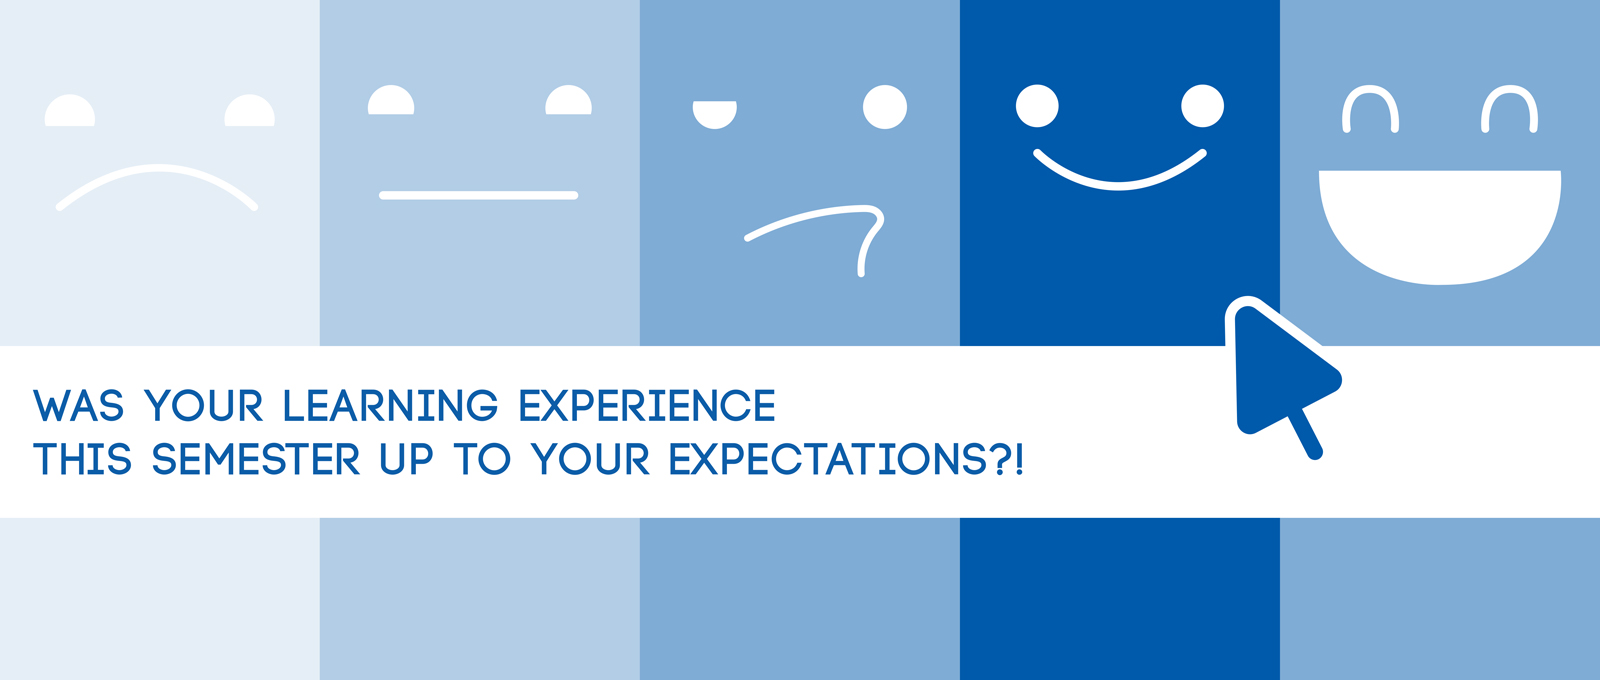 Was your learning experience this semester up to your expectations?